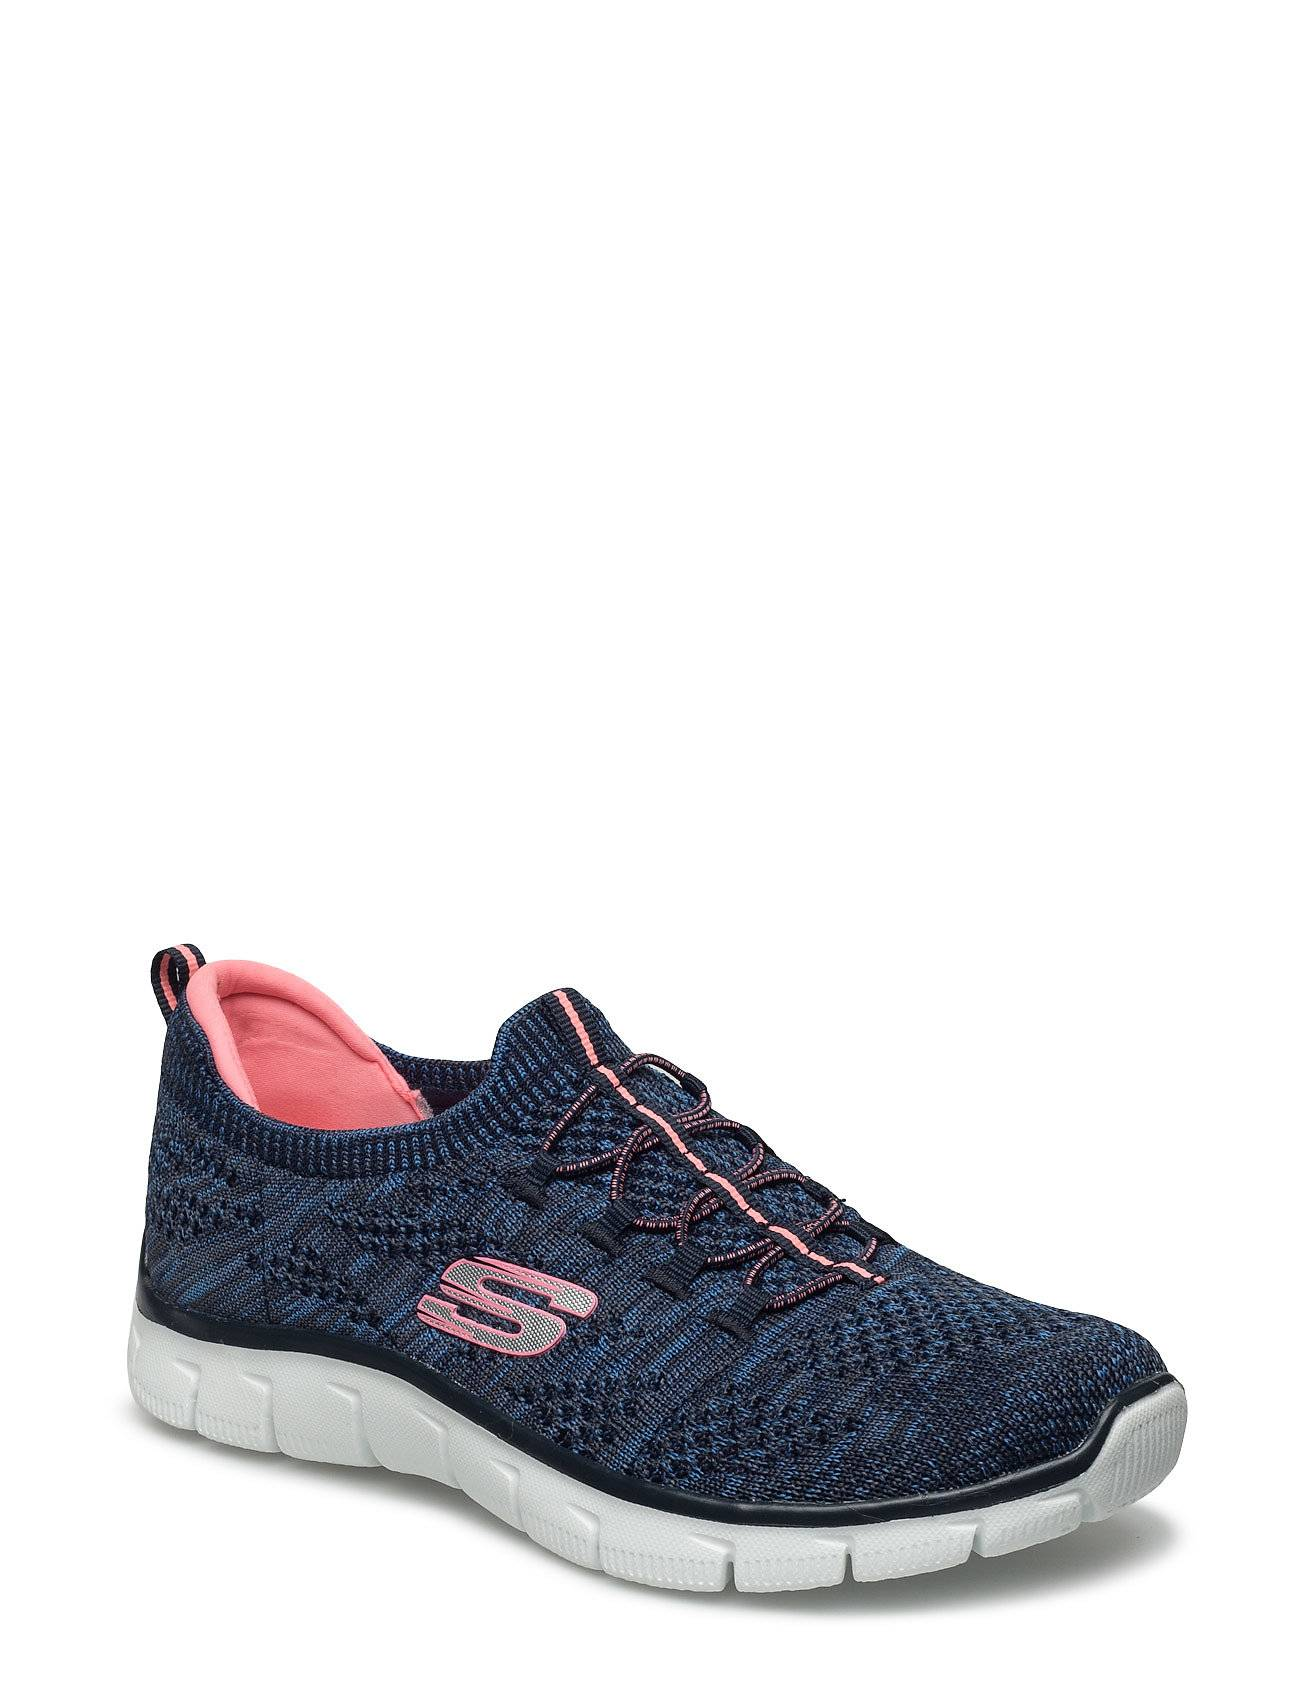 Skechers Womans Empire - Sharp Thinking